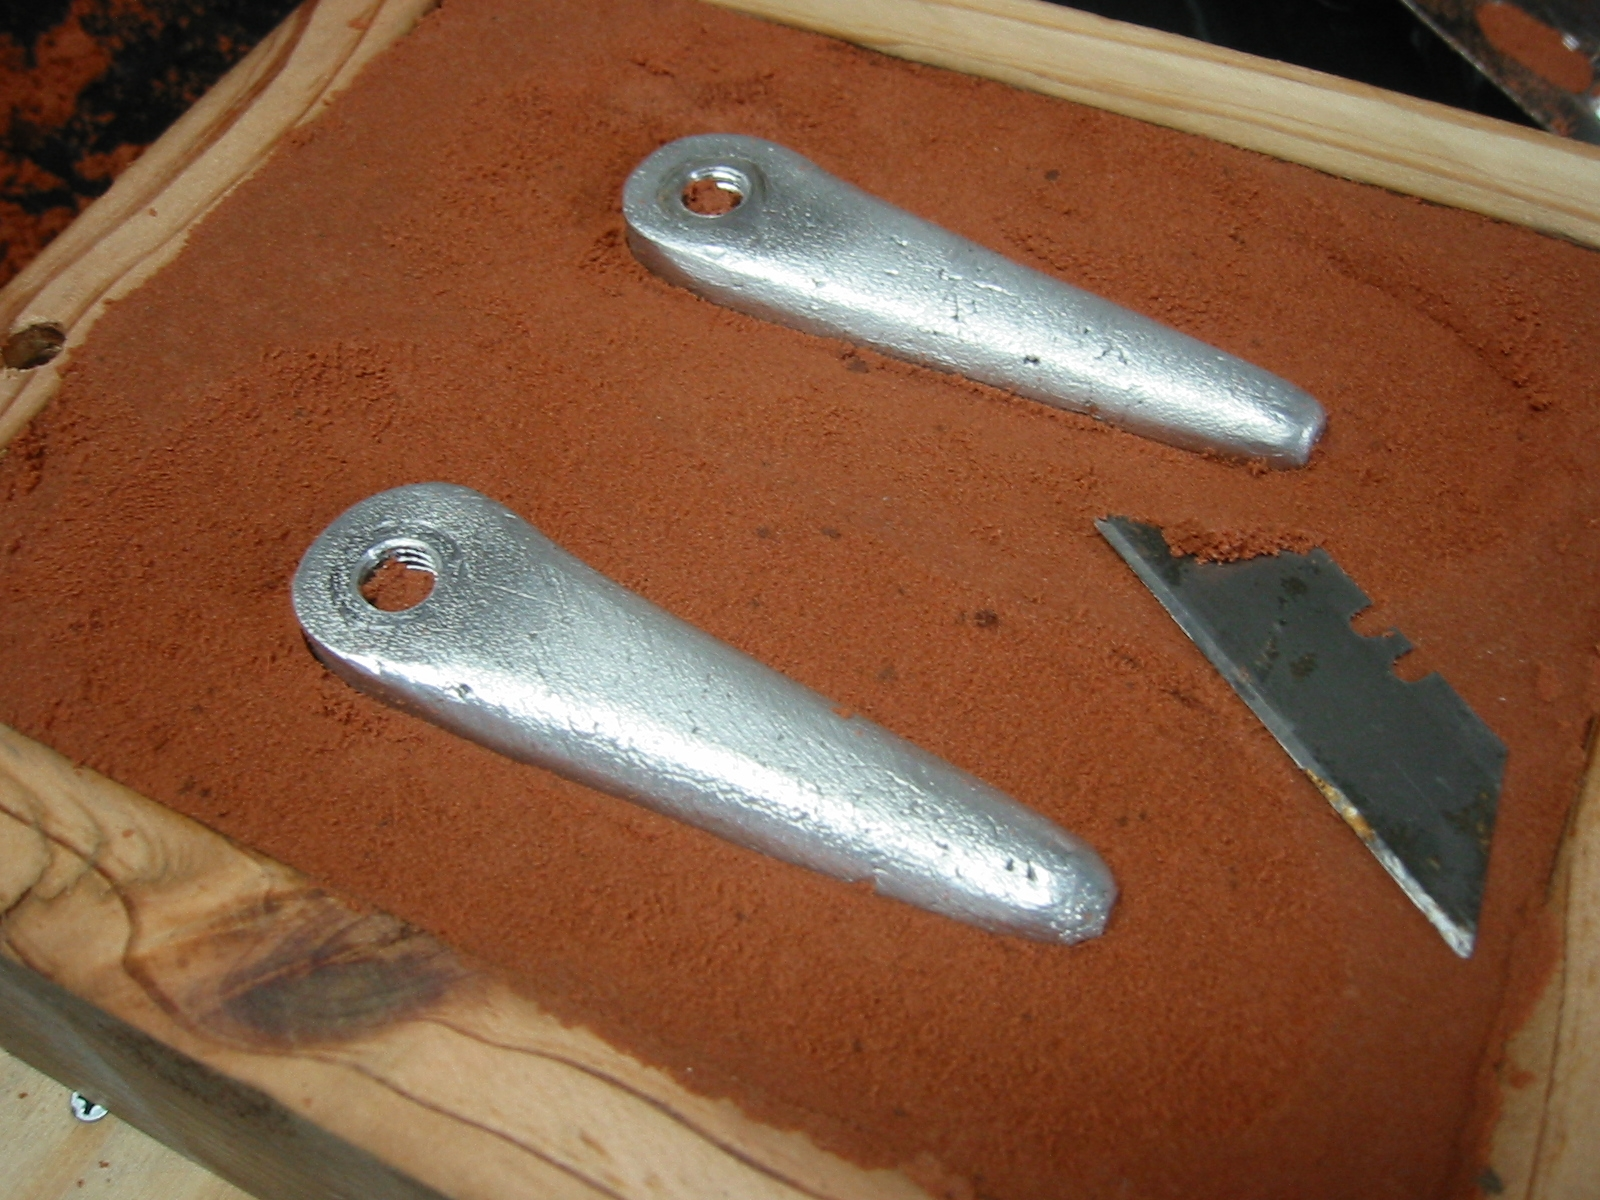 (5) Use a knife or blade to excavate the sand around the part/s just until you can safely lift the part from the sand without disturbing the remaining sand.  This will be your